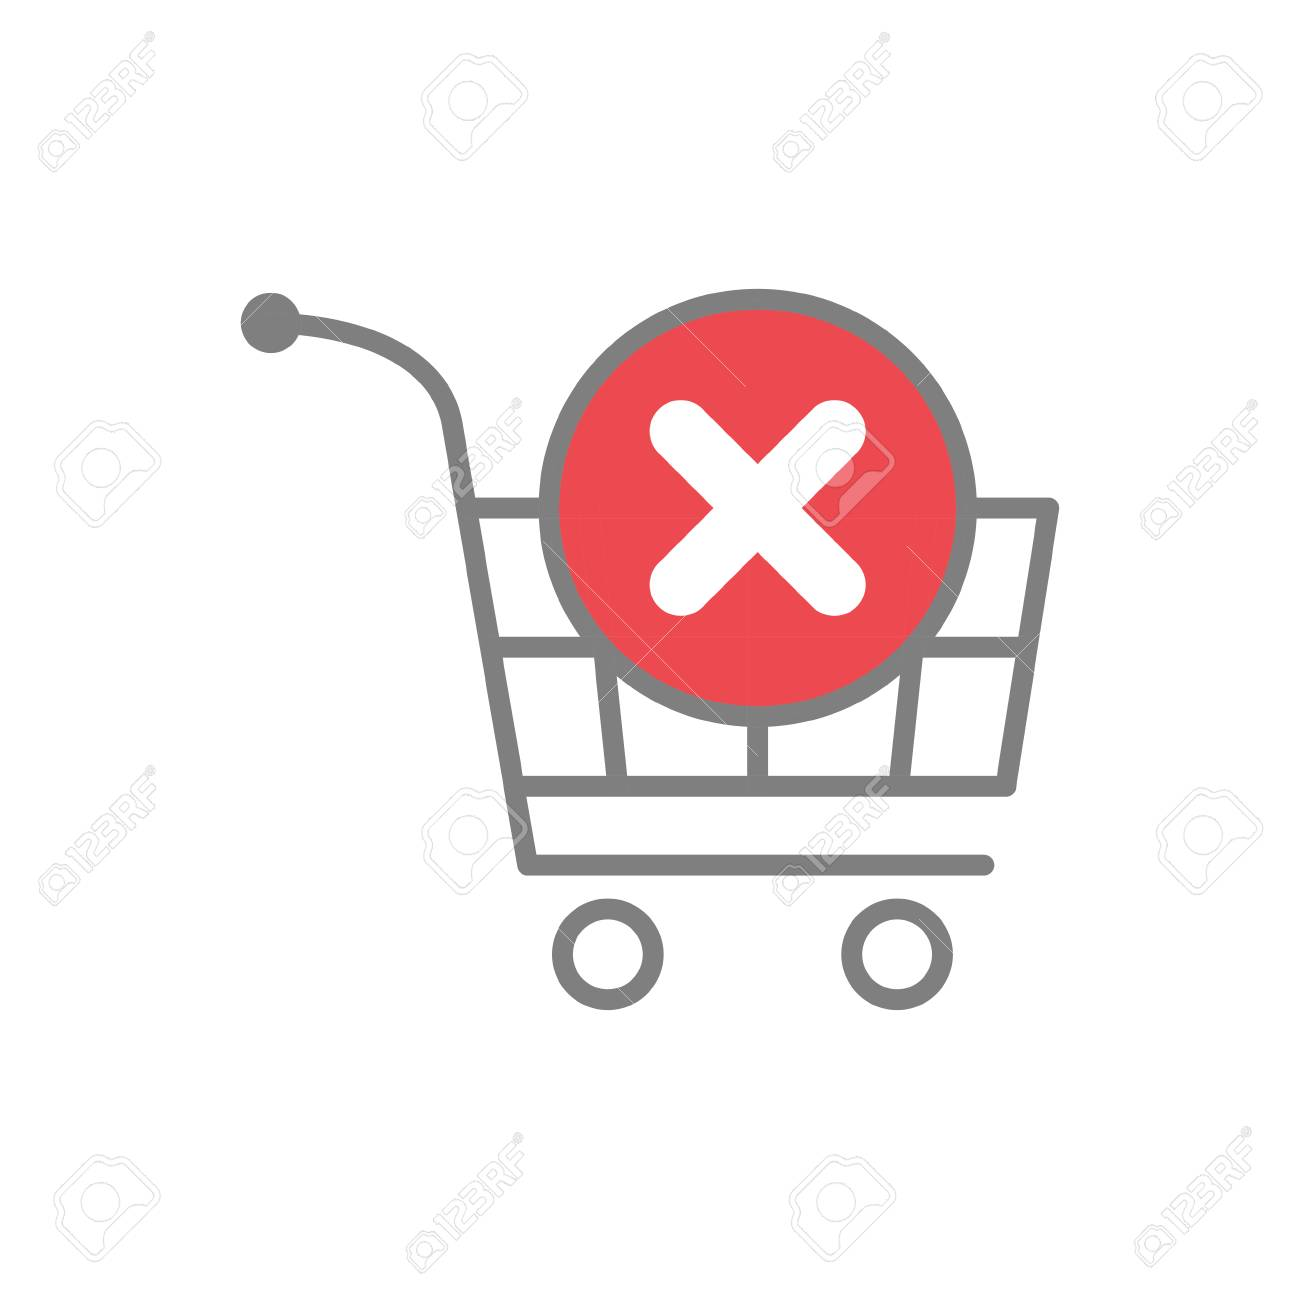 Online shopping cart remove icon on white background for graphic